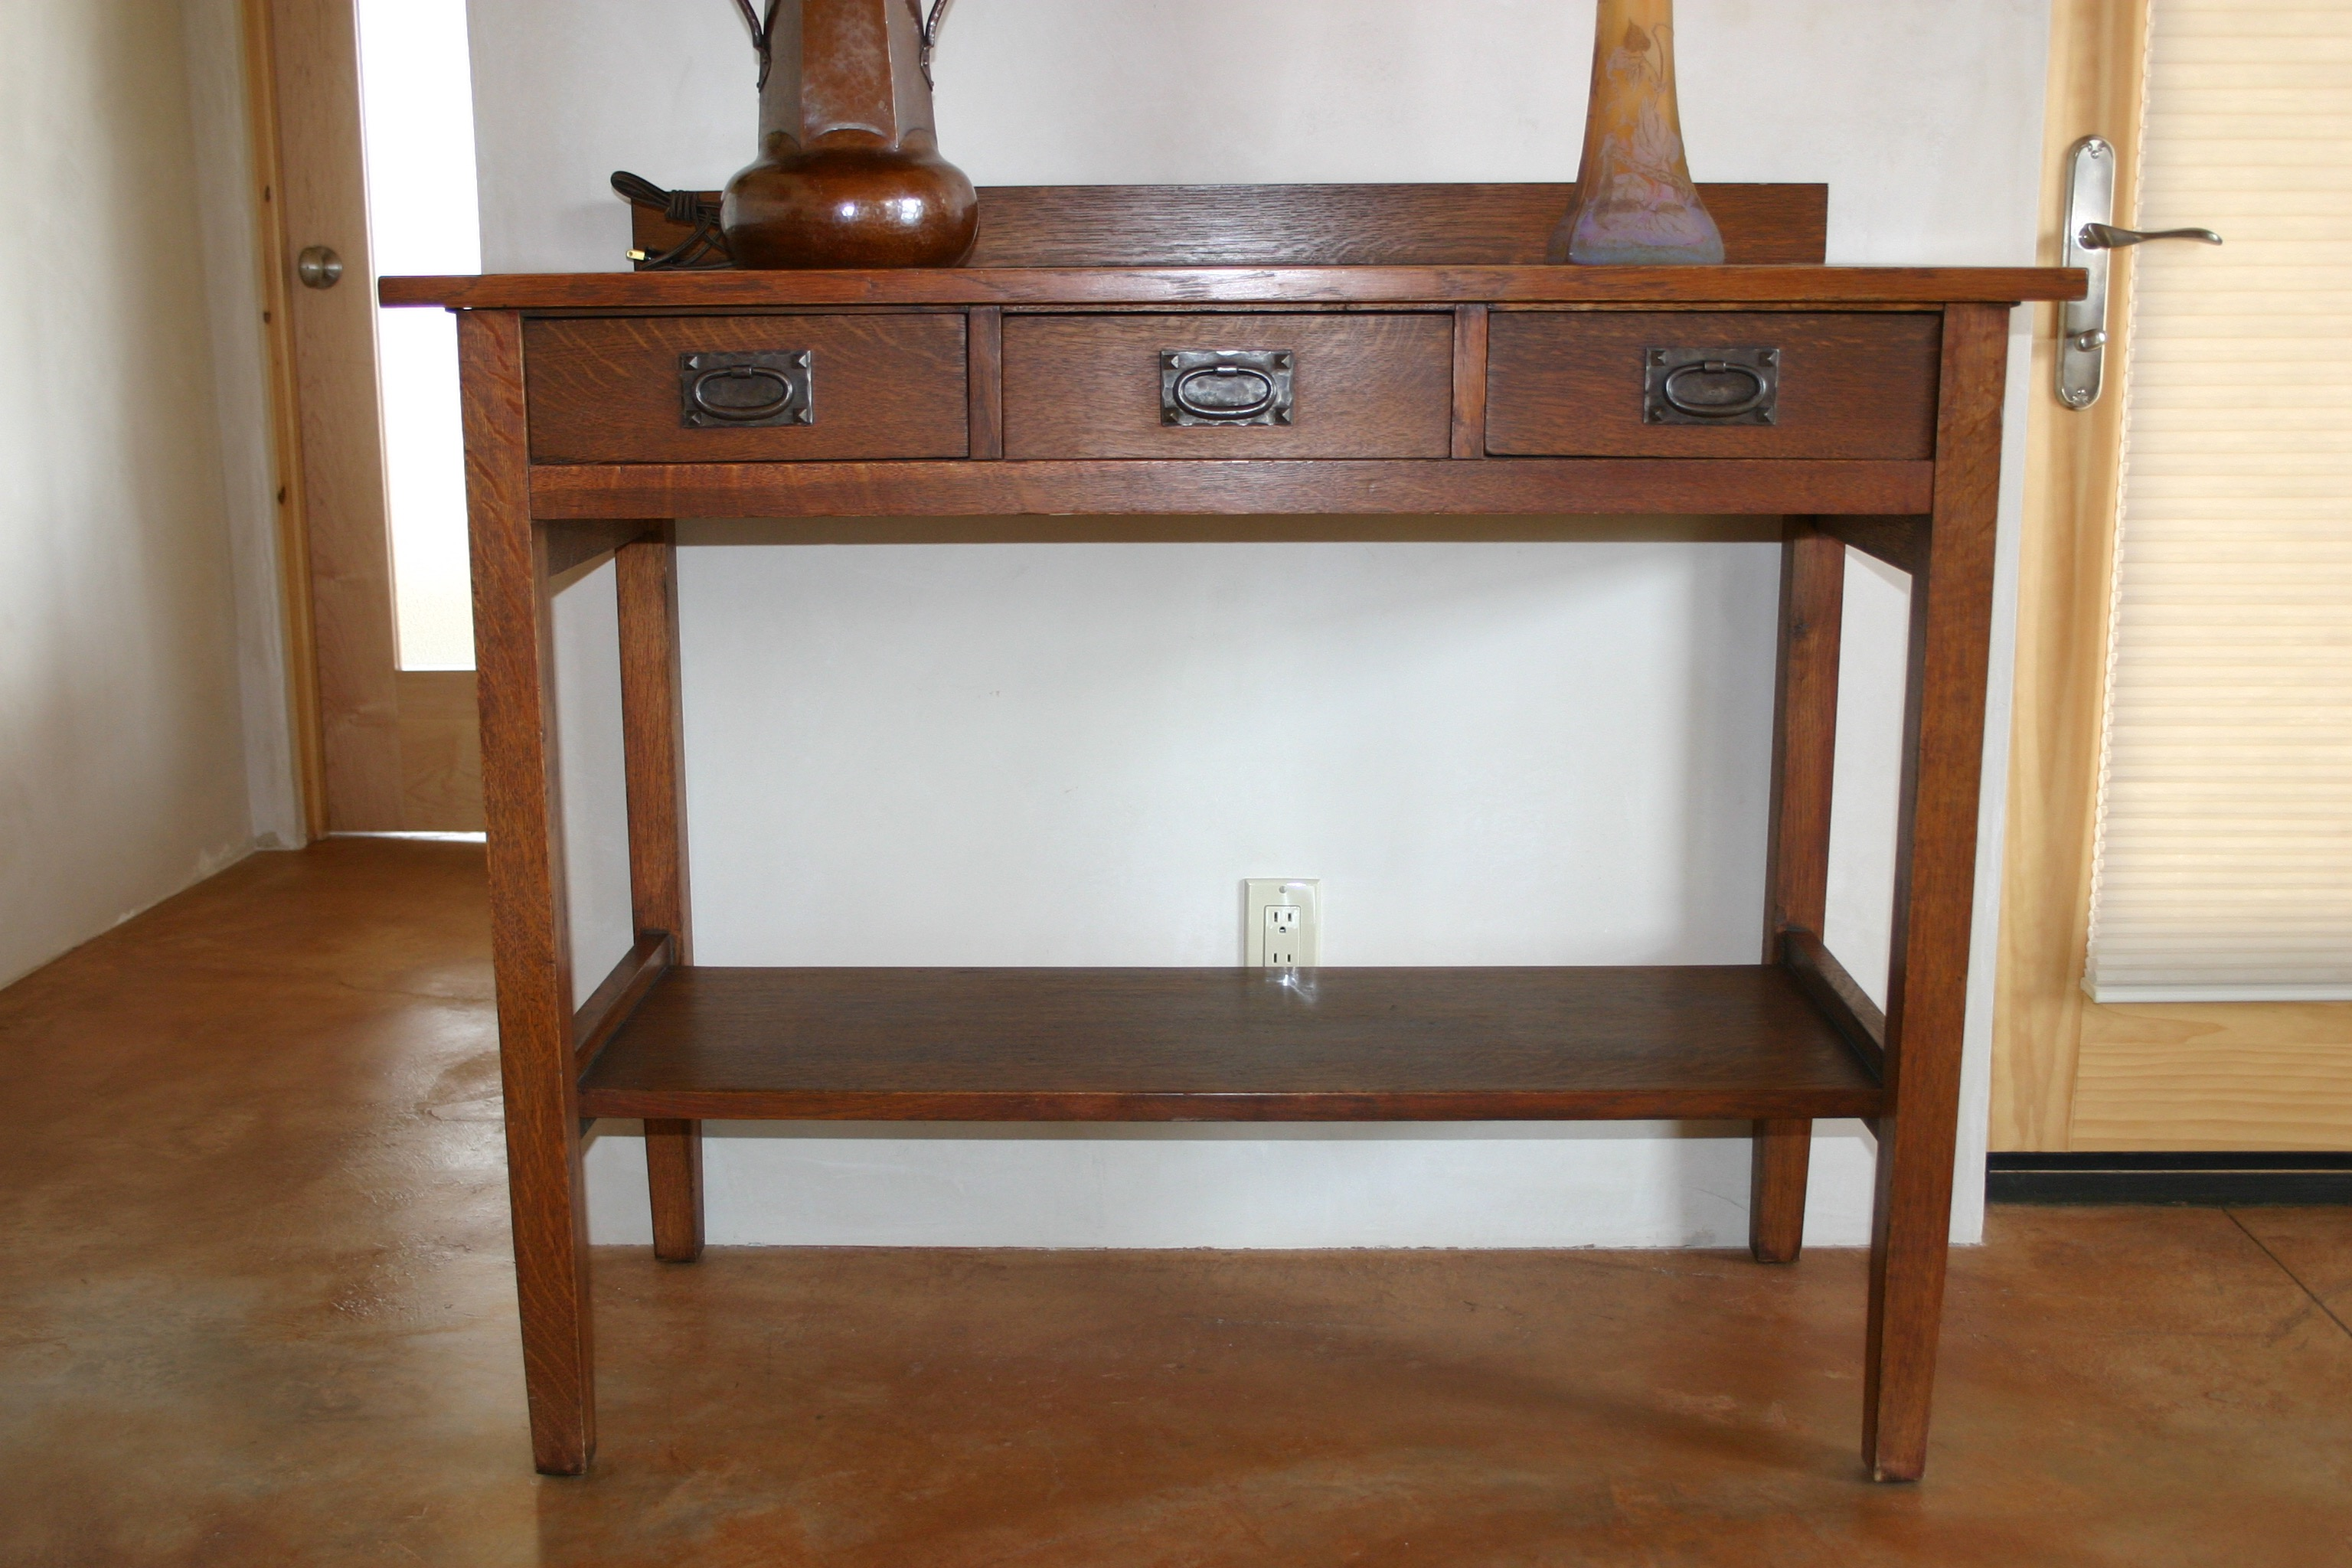 living chair arts oak crafts gl office size mission of prices with used green table online wood nightstand lamp dressers craftsman kitchen slag dining for stickely and full mattresses desk lamps antique panel floor stickley benton sale style room furniture by box torchiere